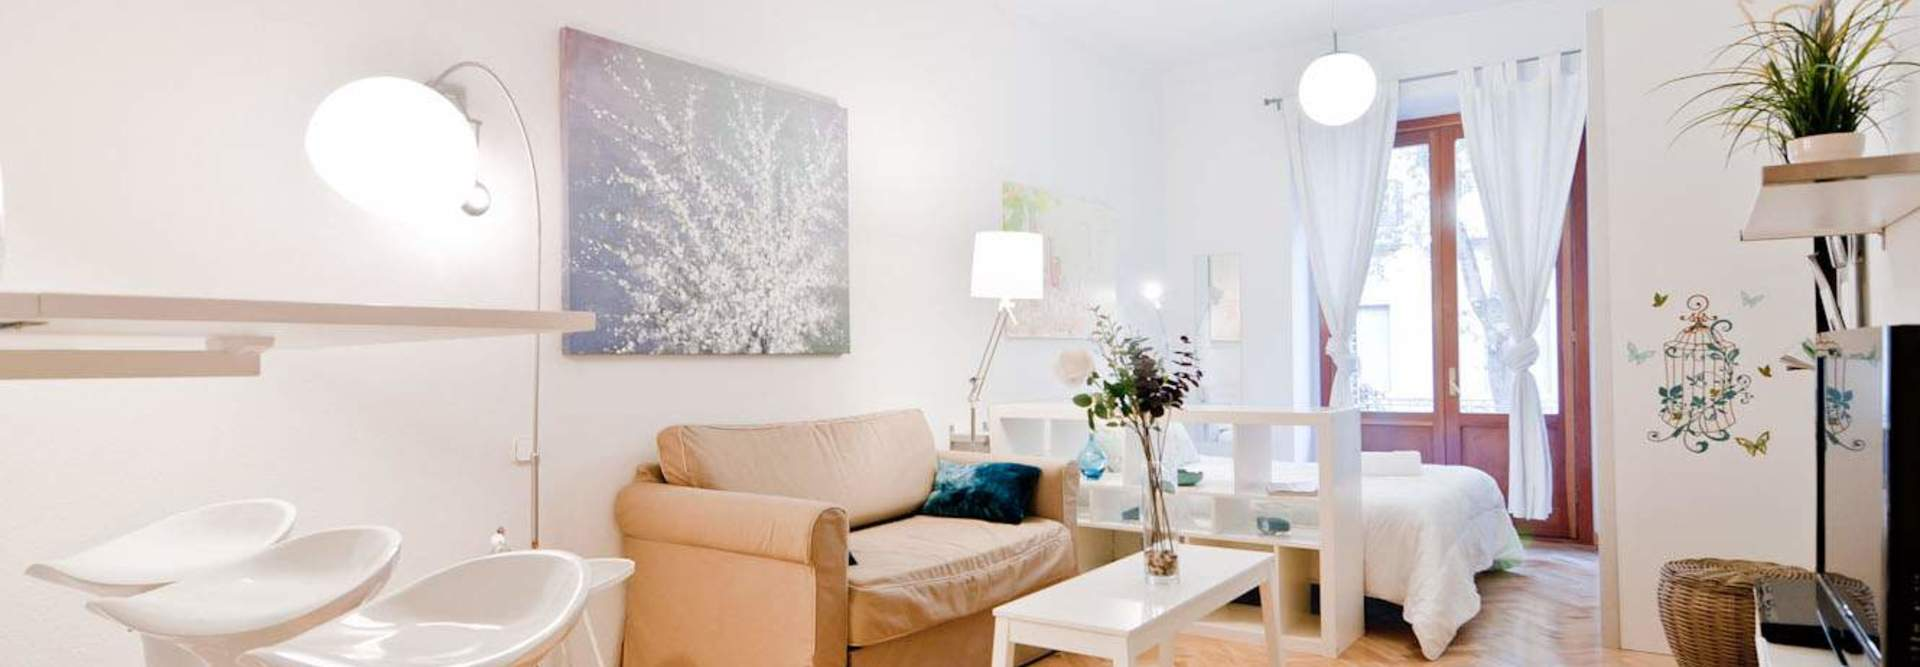 Home alquiler apartamento madrid centro mad4rent  16